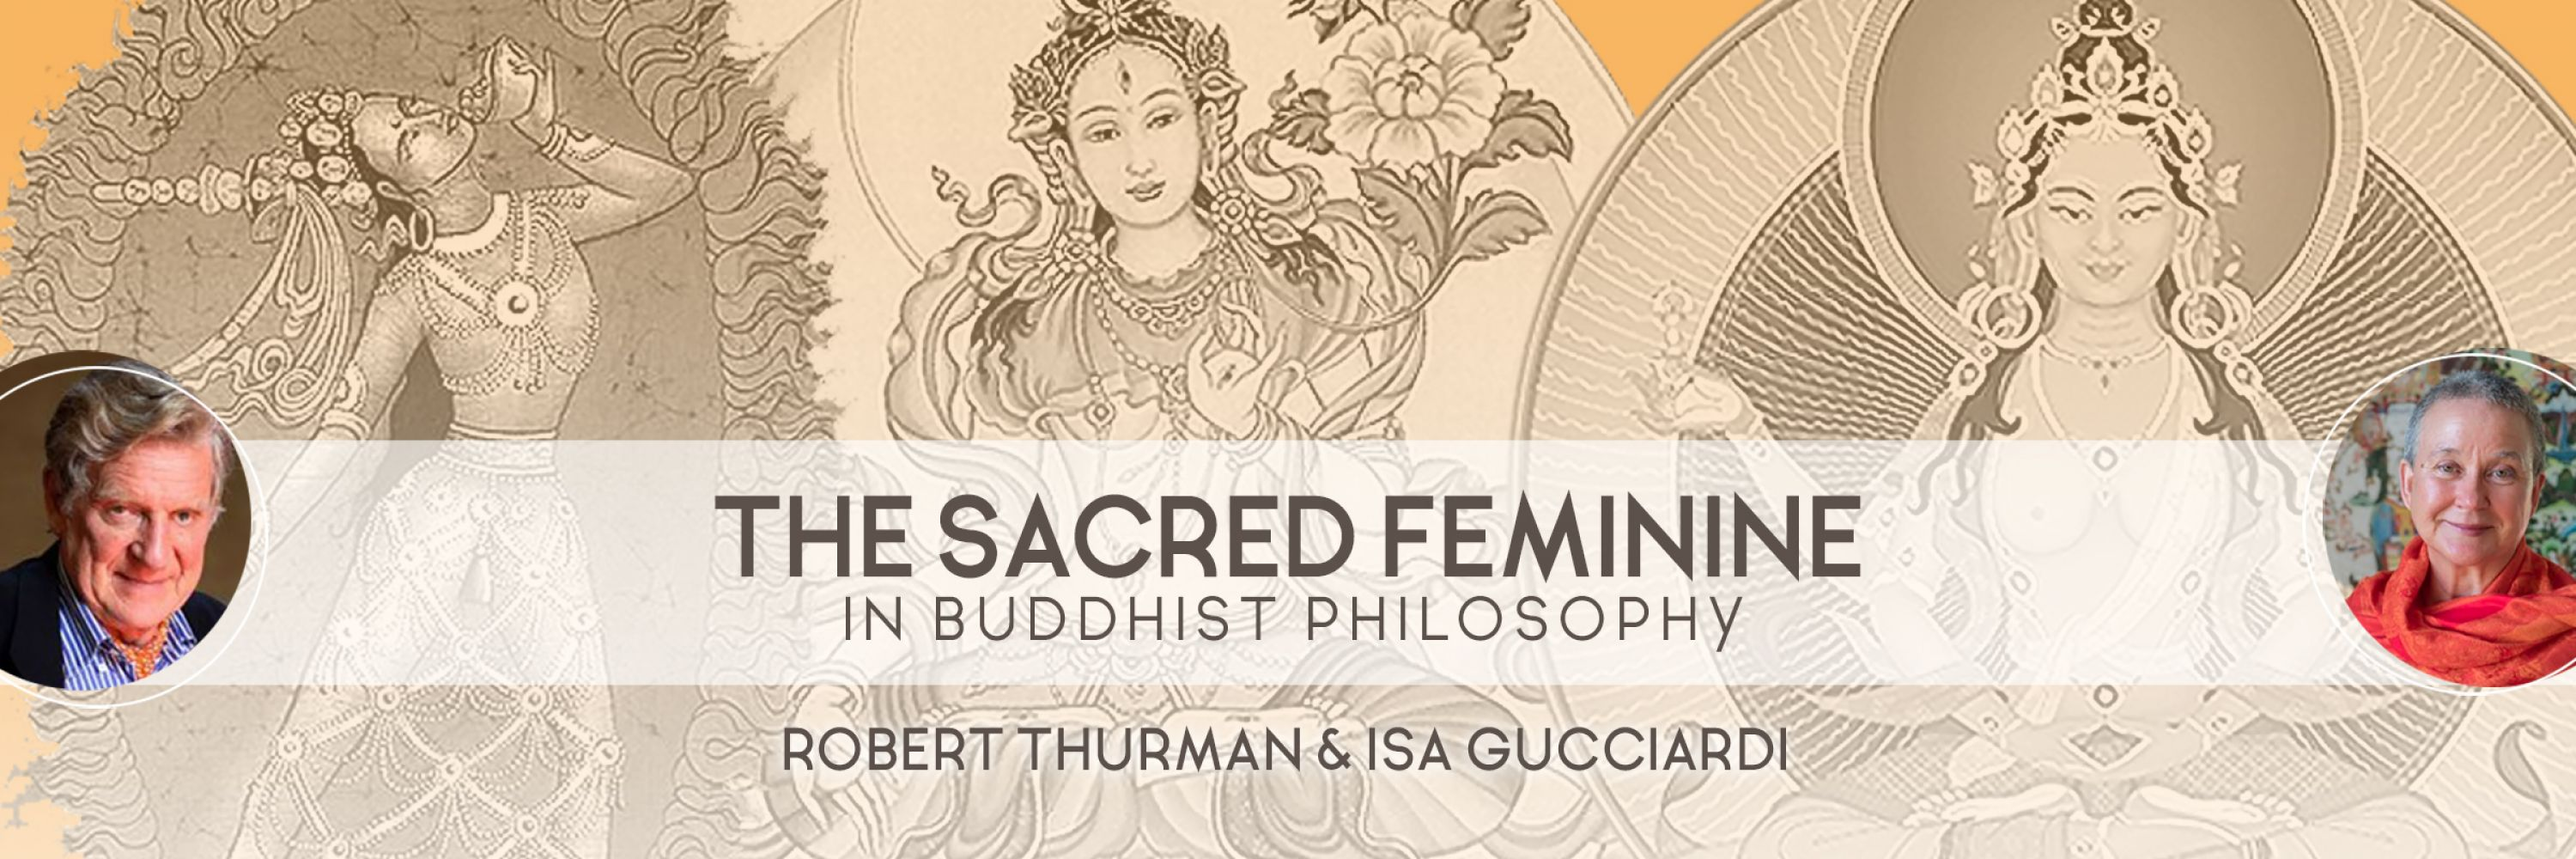 The Sacred Feminine in Buddhist Philosophy